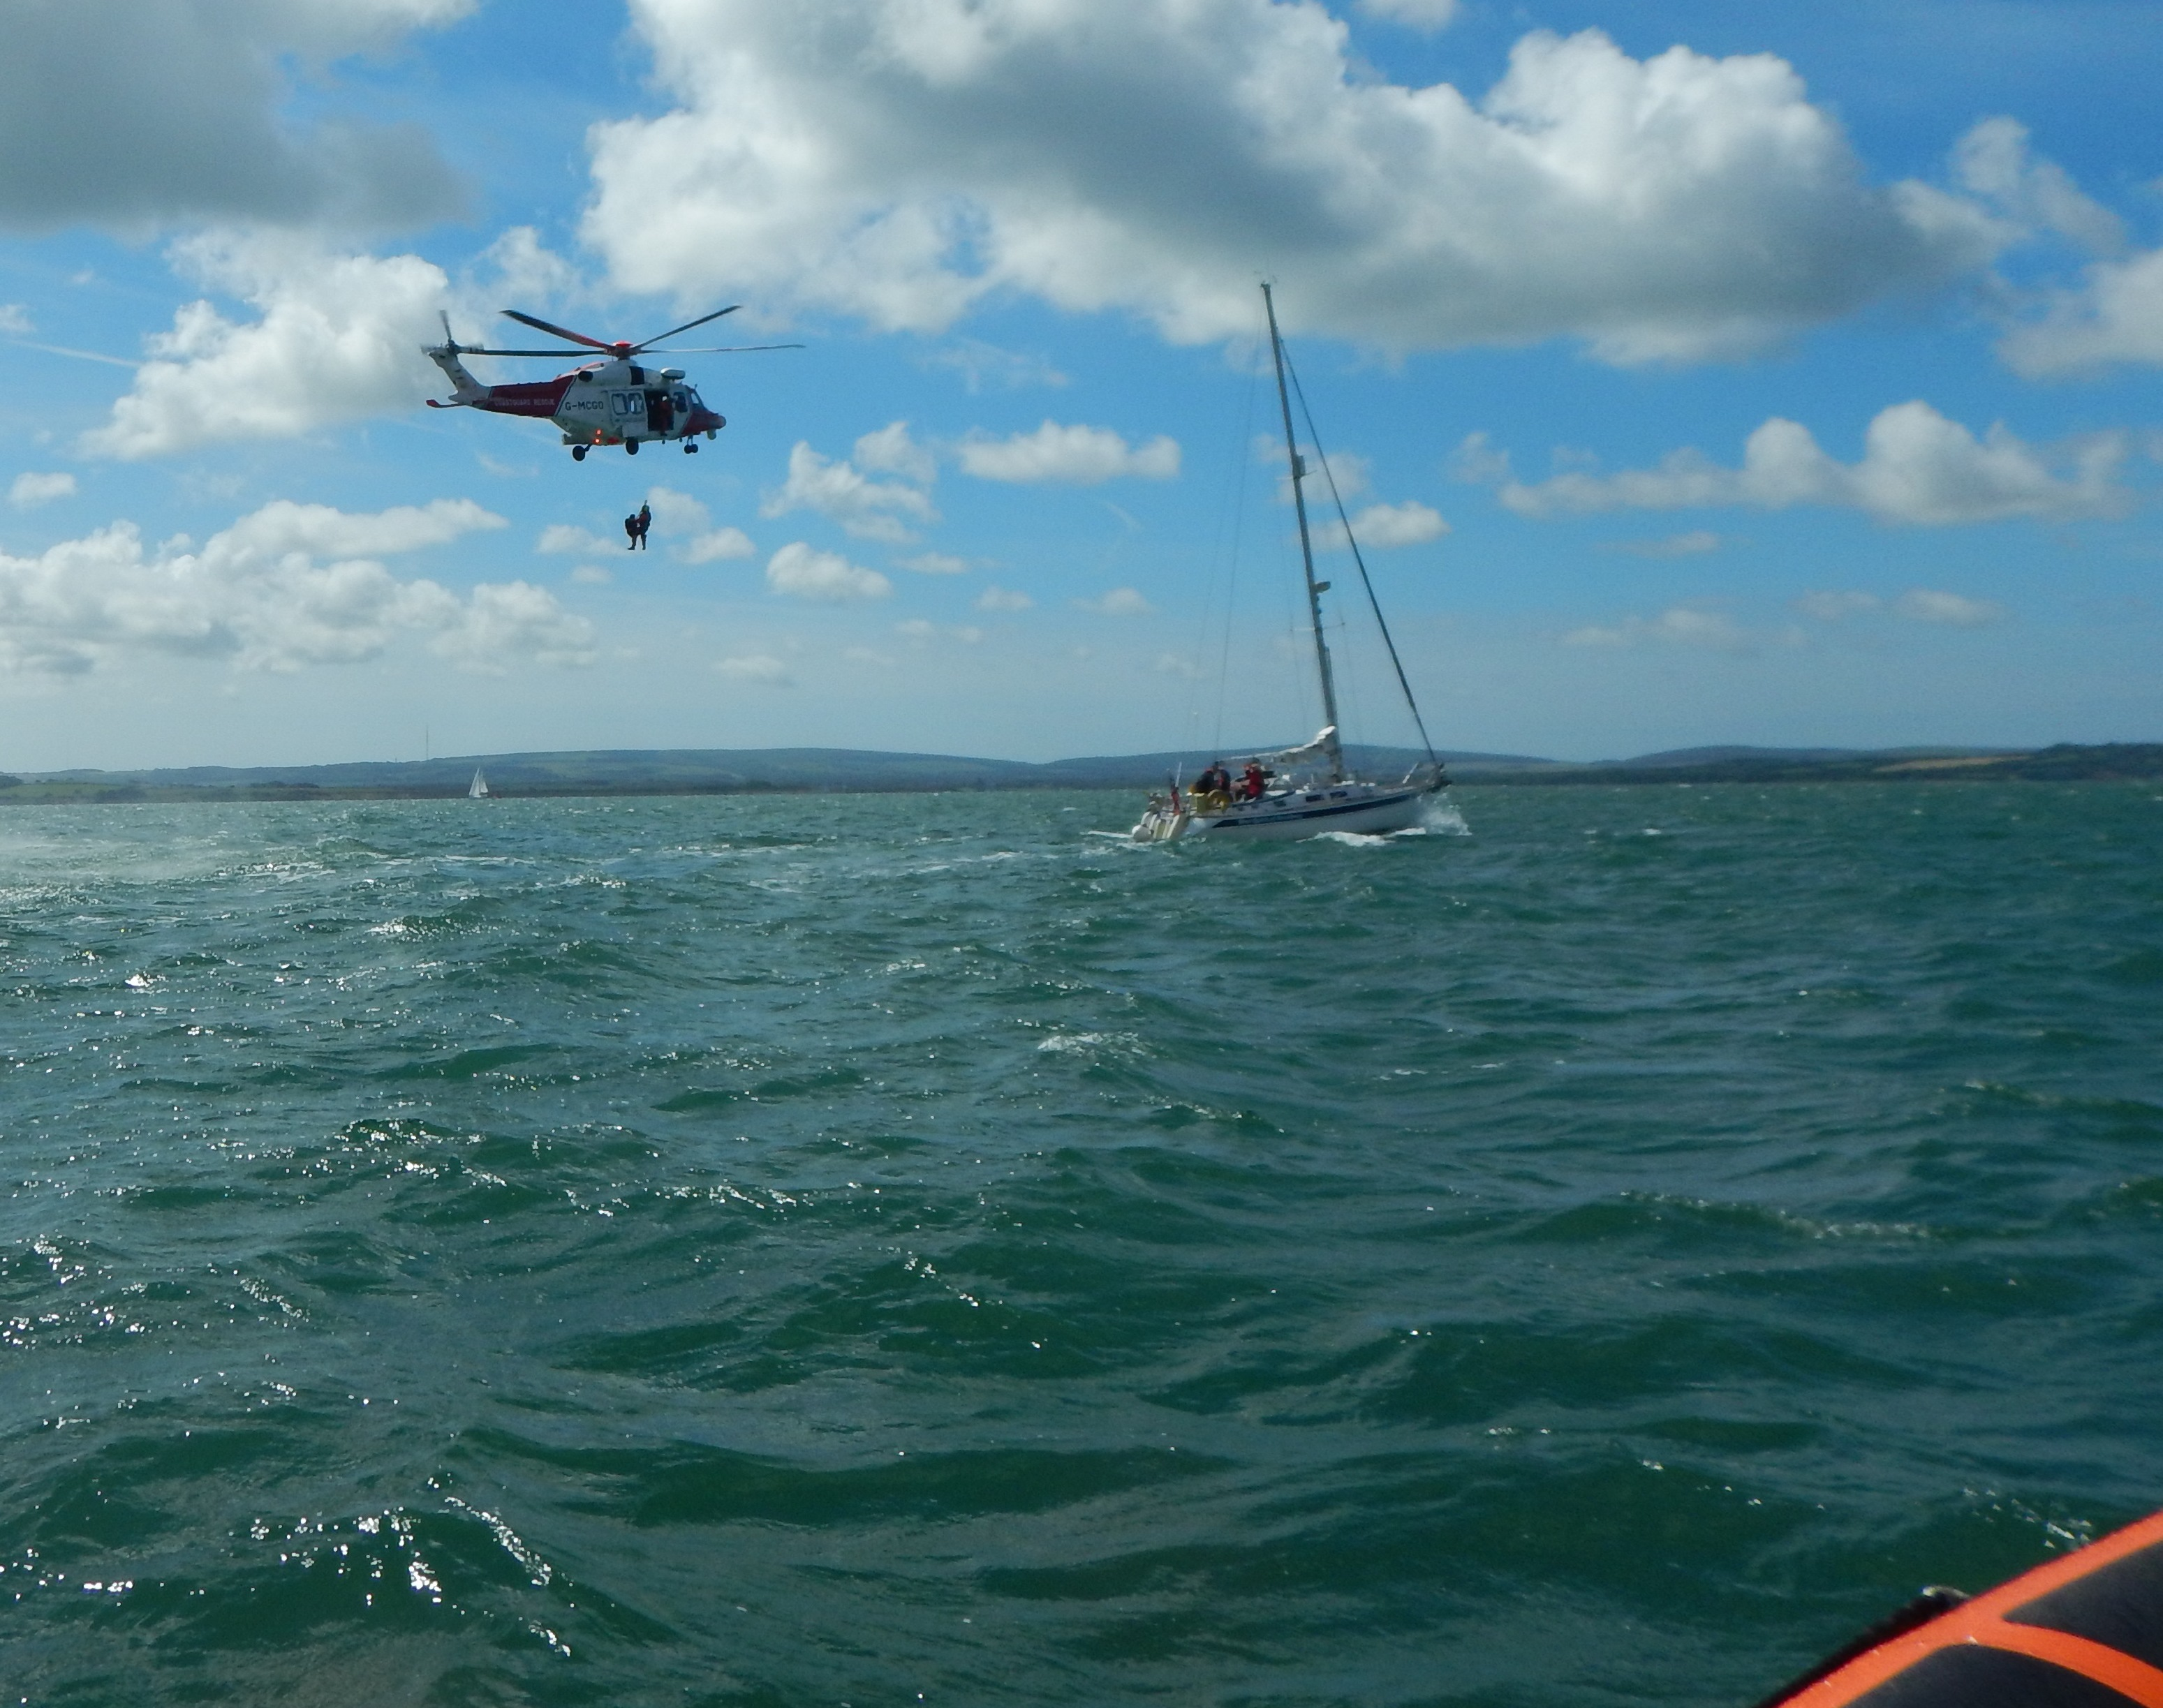 A paramedic assists in the helicopter rescue of the kayaker, with the lifeboat standing by.